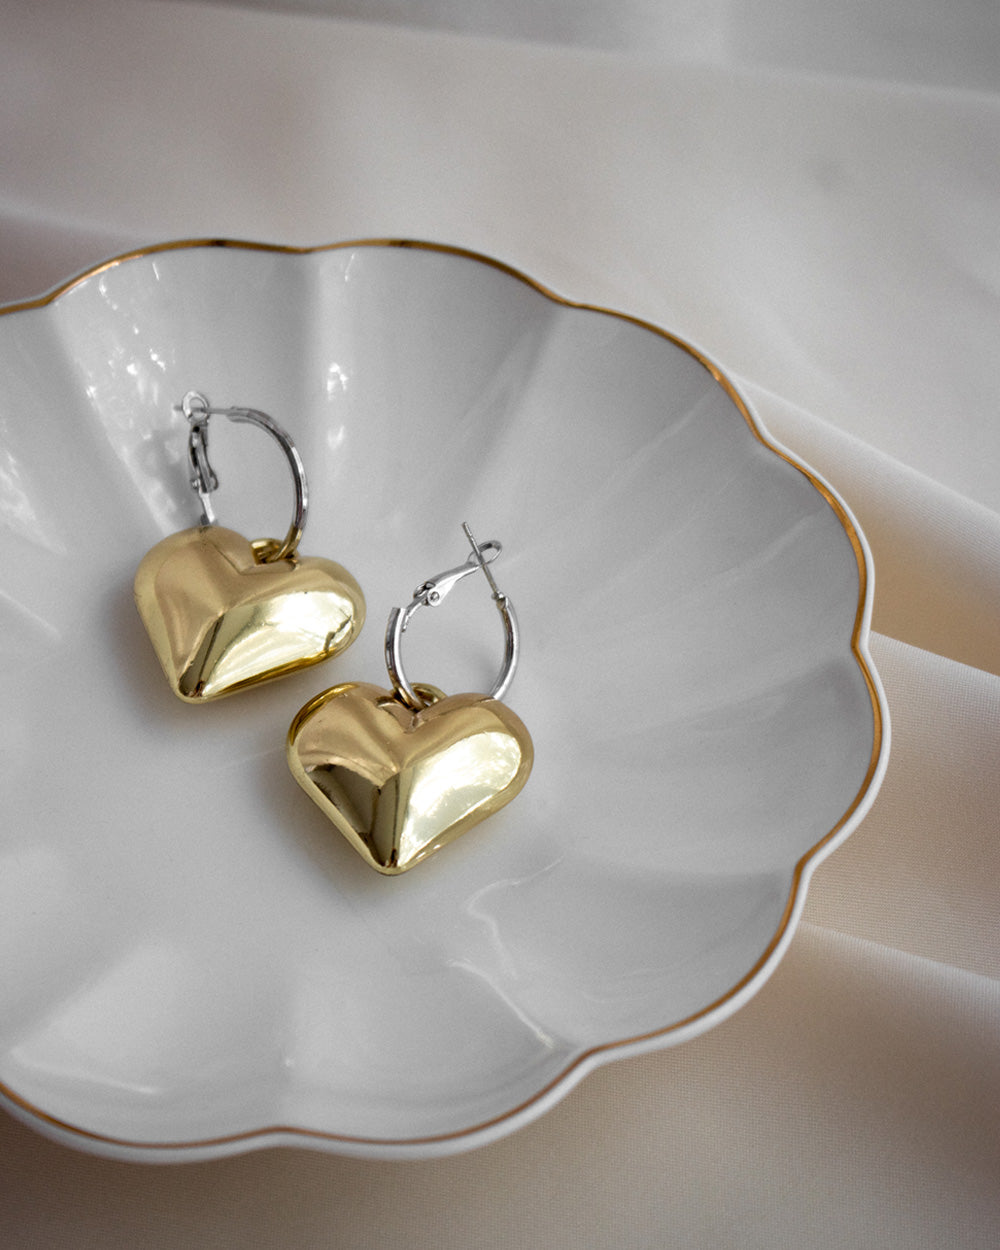 Chubby heart shape charm earrings with a chic silver hoop - The Hexad